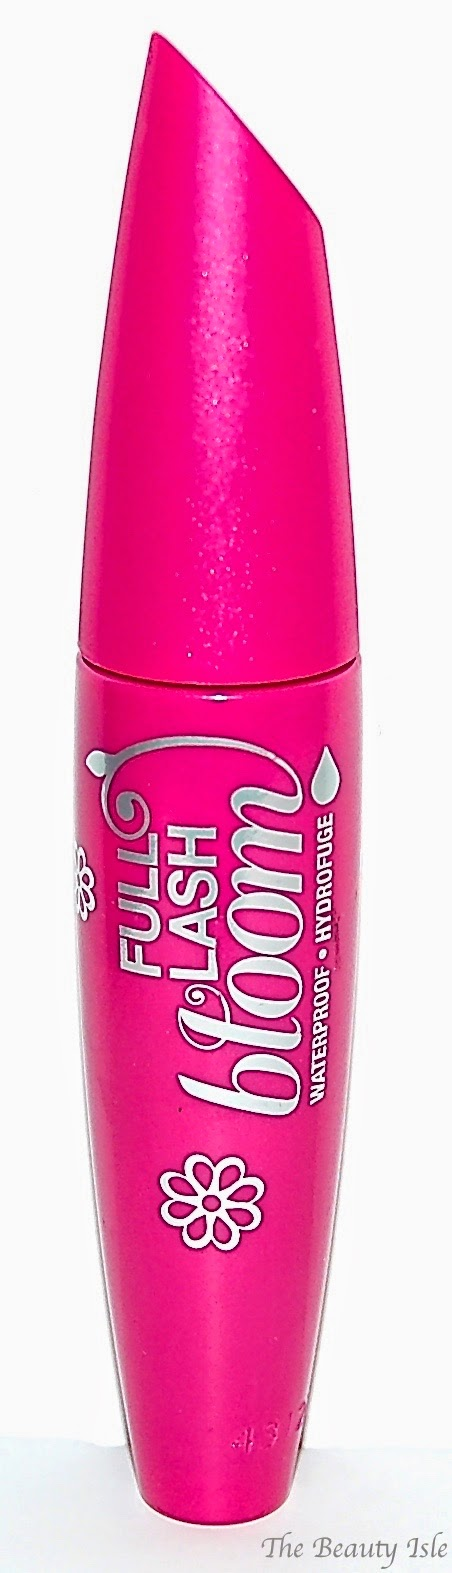 Covergirl Full Lash Bloom Mascara